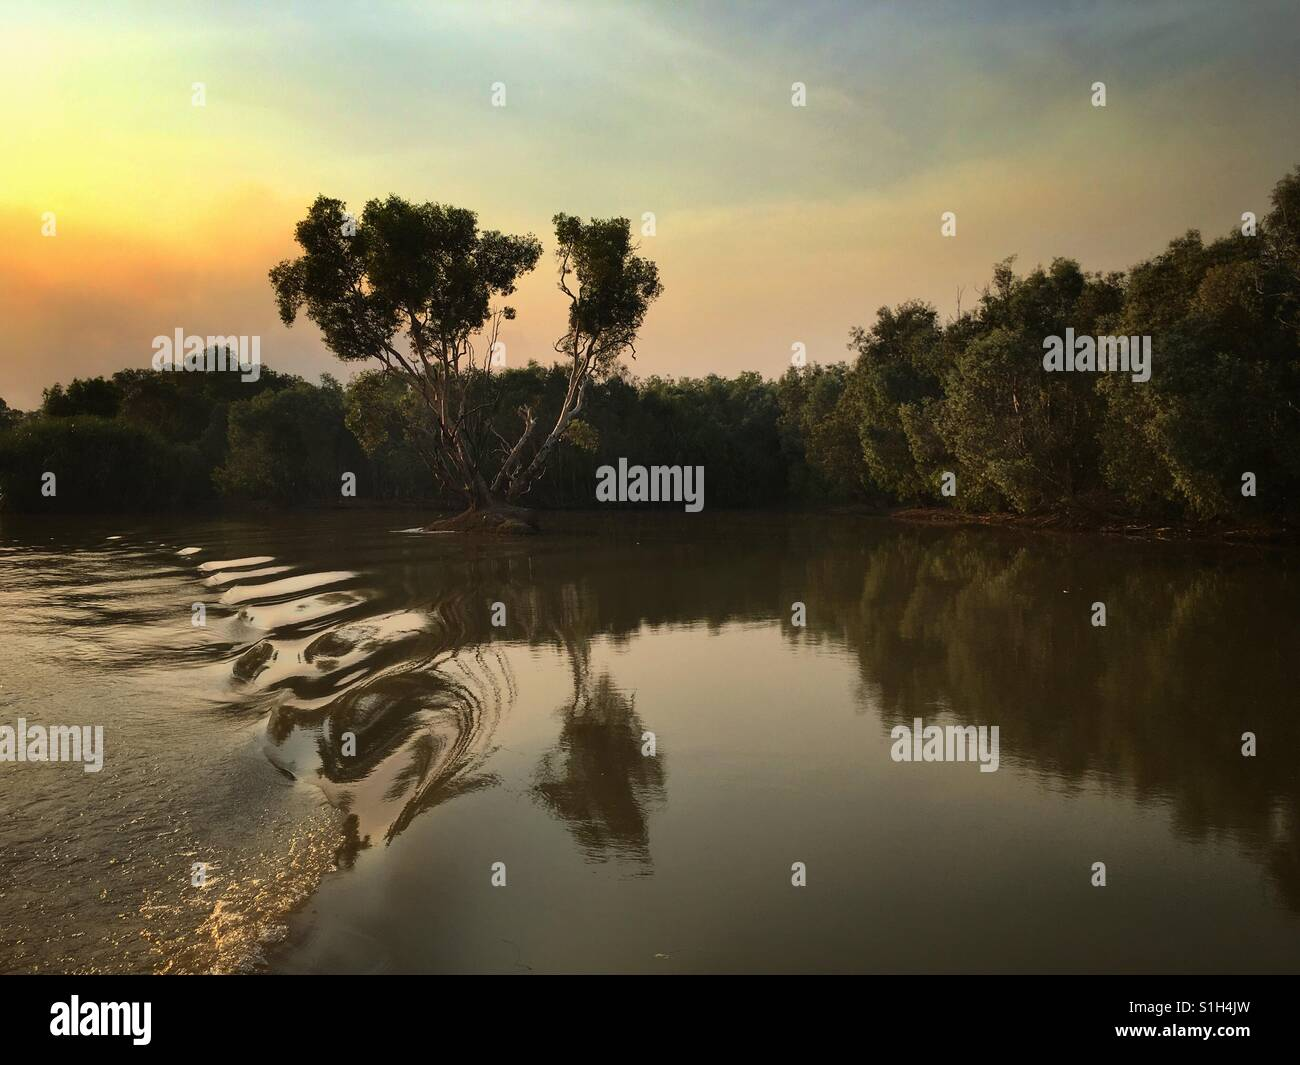 Sunset over Hardie Billabong, near Darwin in the Northern Territory of Australia. - Stock Image